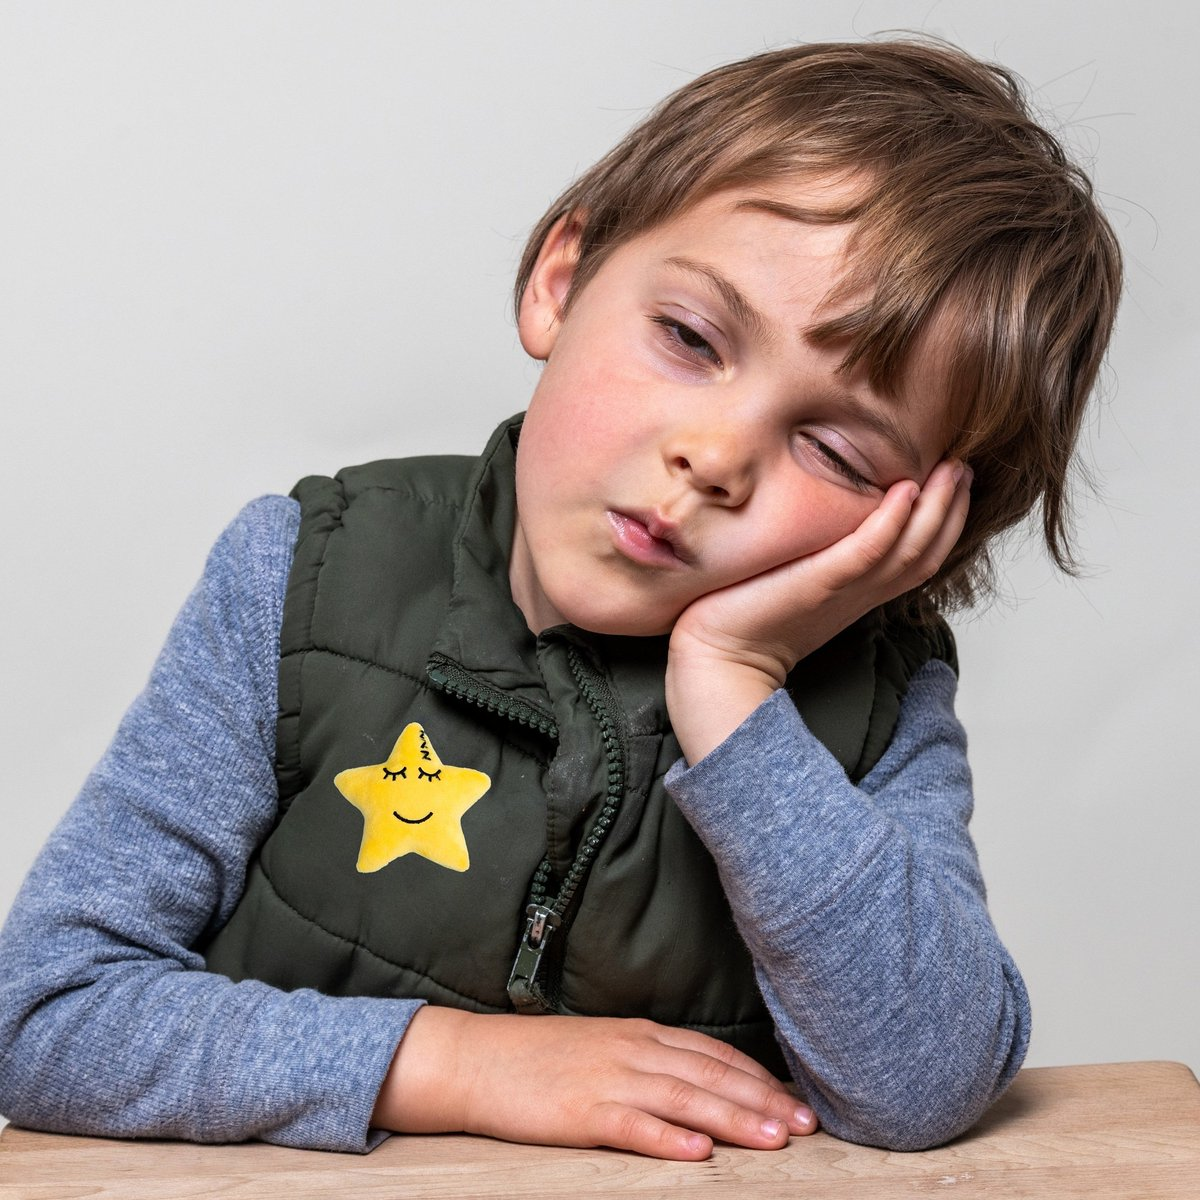 He's tired, cranky, and non verbal.  He gets his message across by wearing Sleepy Star. My Mood Stars...a highly effective emotion communication resource. #childemotionalwellbeing #nurserymanagers #primaryschool #EYtwittertagteam #MotherOfMoodStars